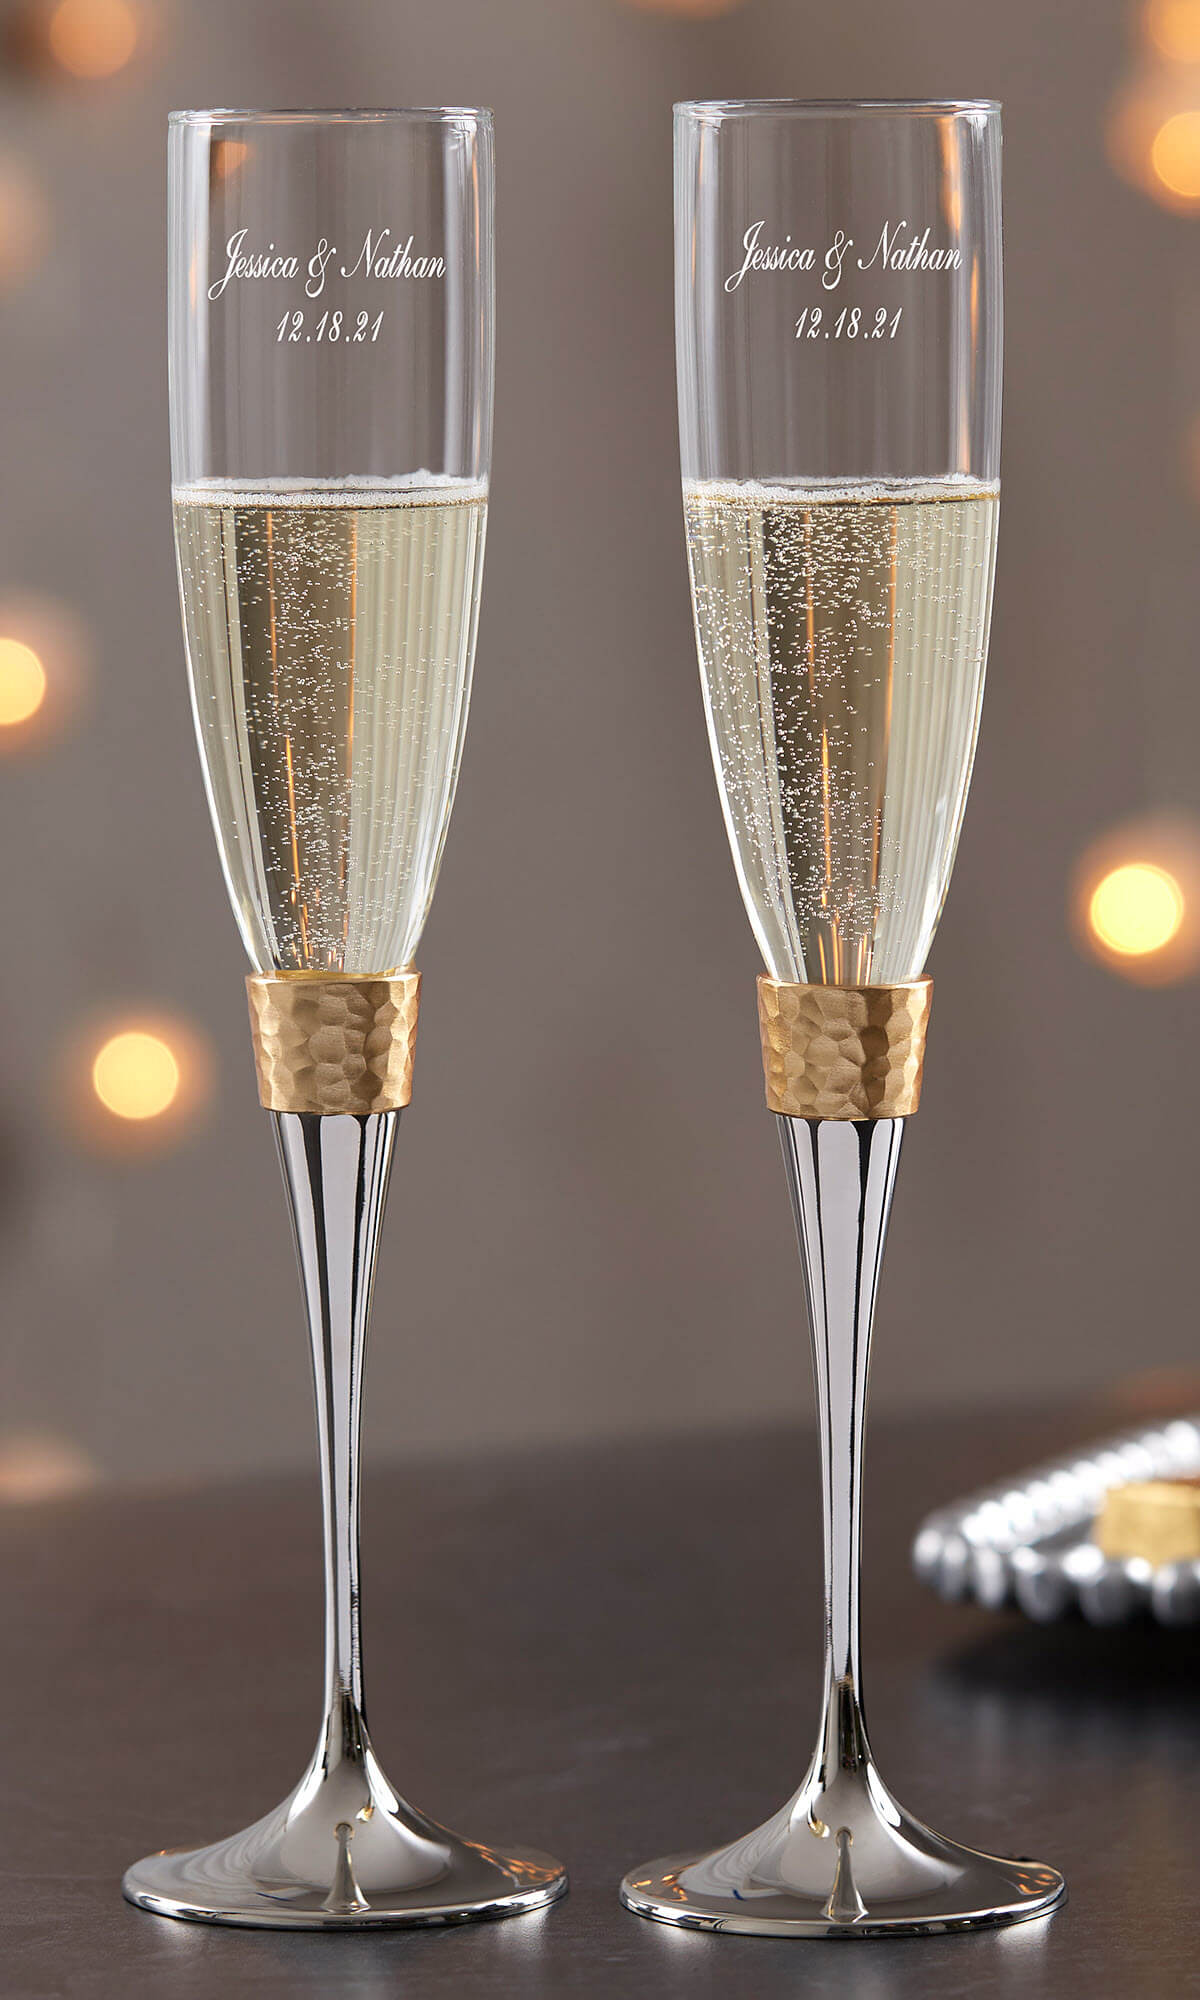 50th Anniversary Gifts - Gold Champagne Flutes